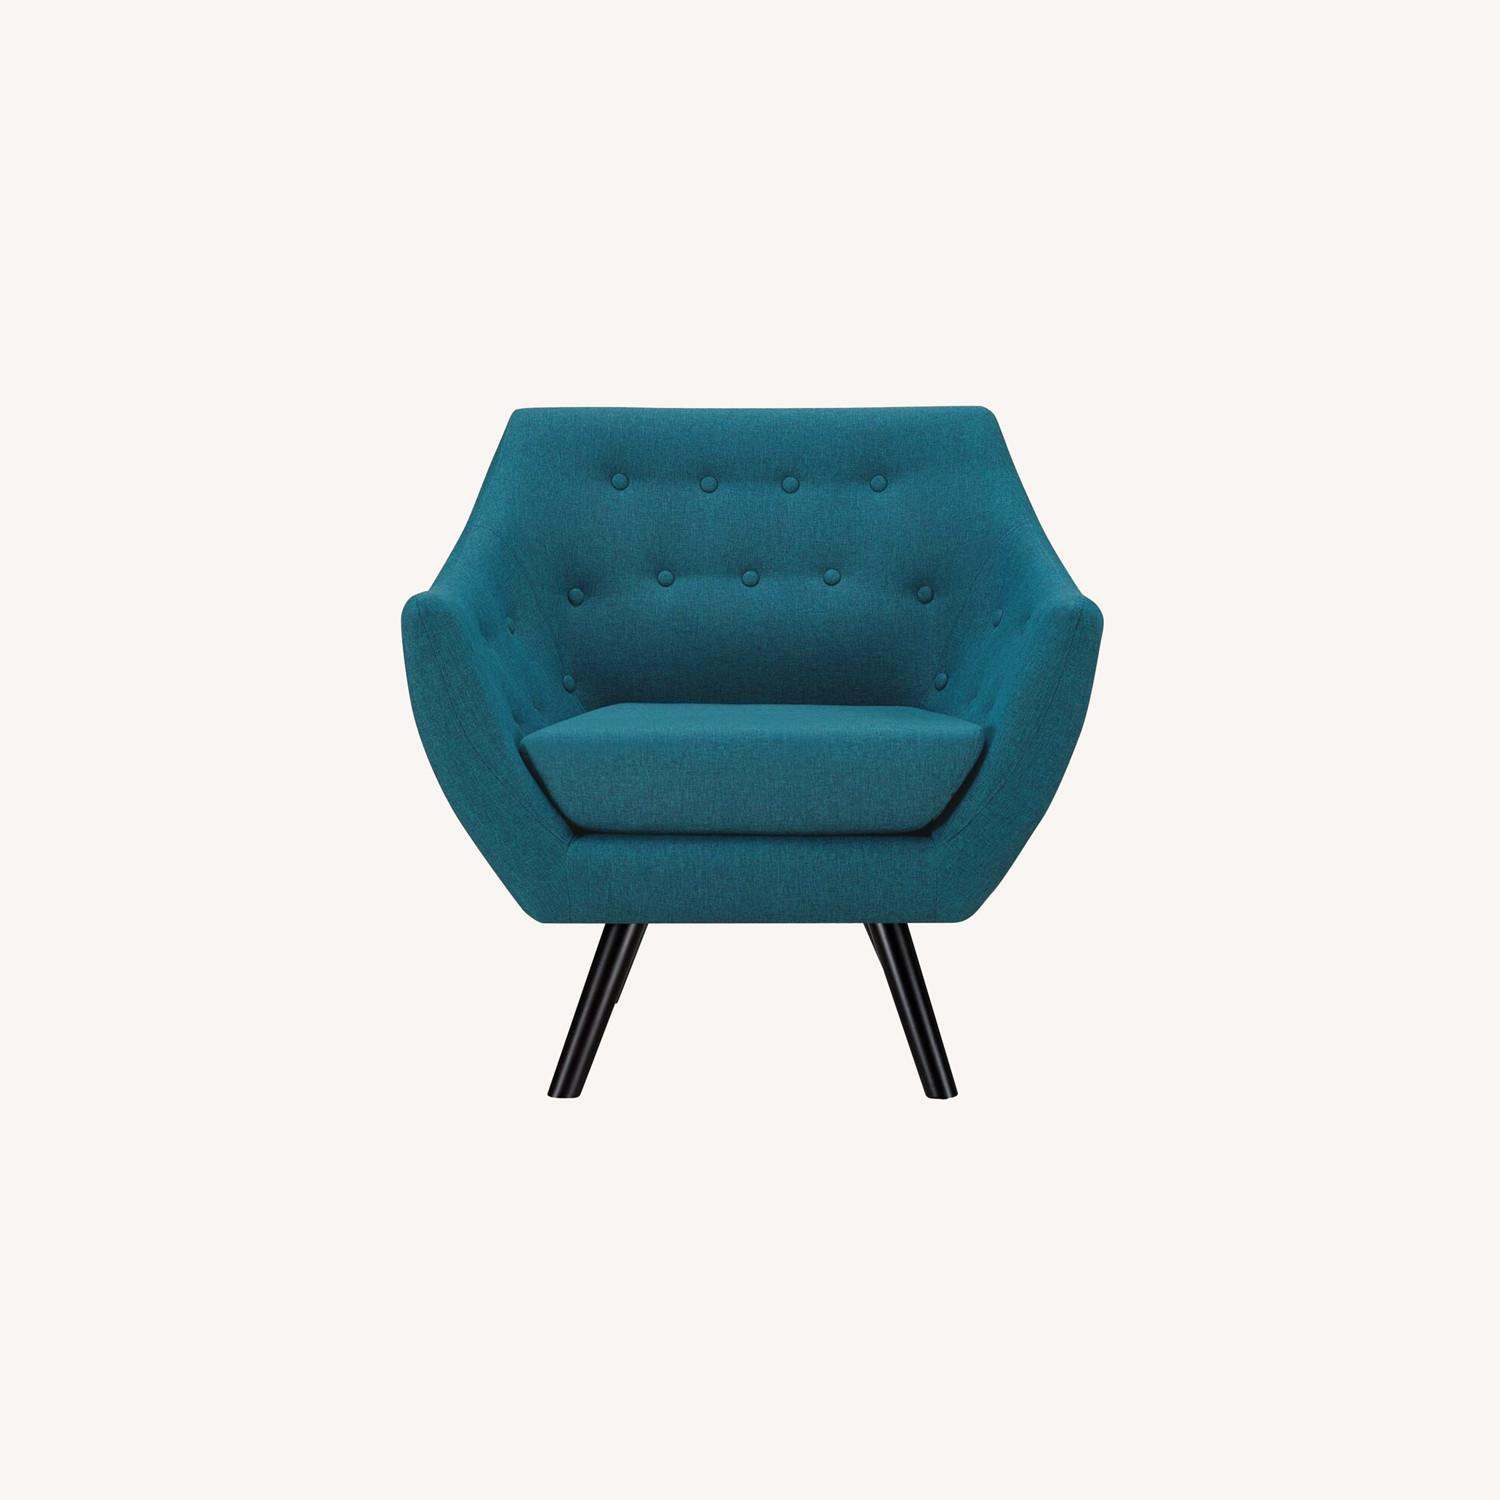 Armchair In Teal Fabric & Tufted Button Upholstery - image-6